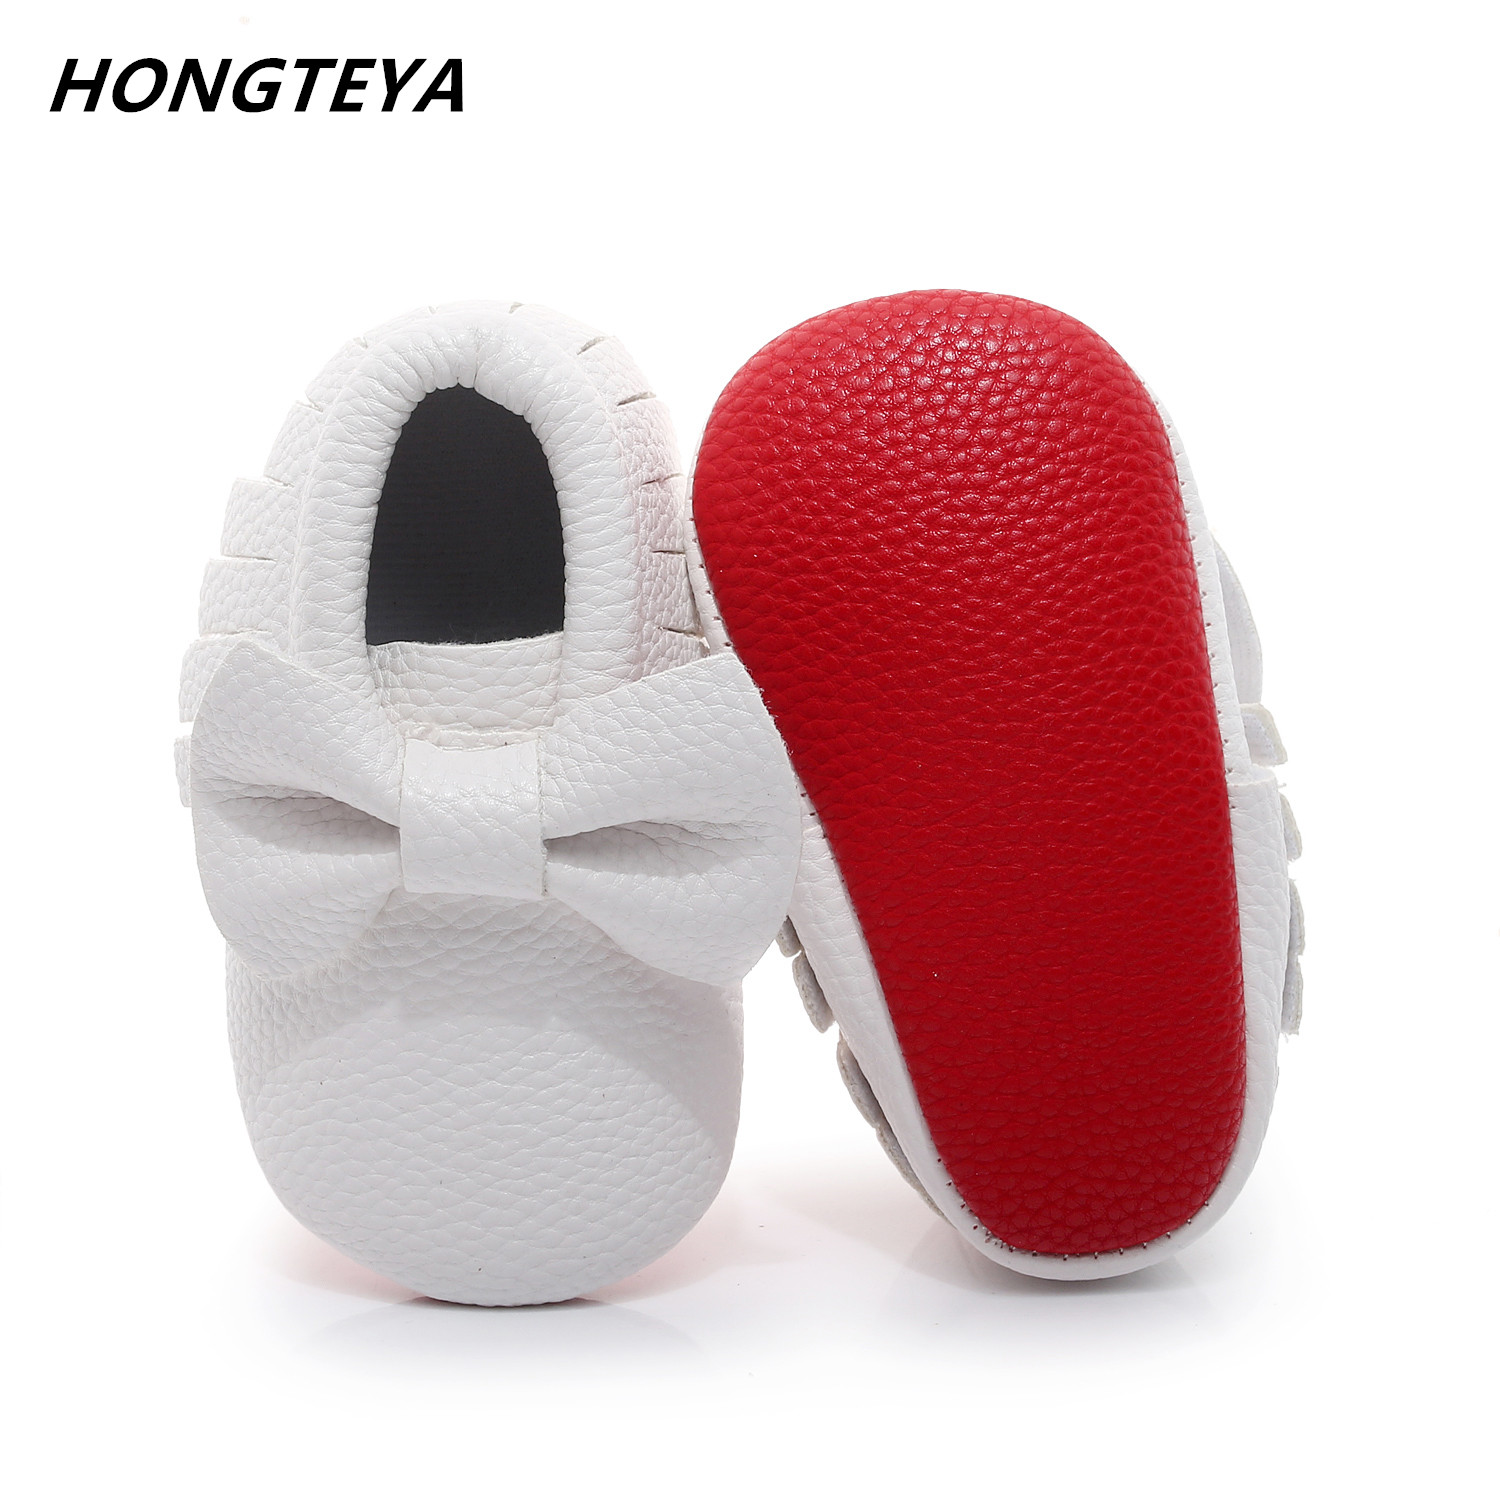 Hongteya Red Bottom Baby Moccasin First Walkers Gold Bow Baby Shoes Newborn Infant Shoes For Toddler 0-2 Y